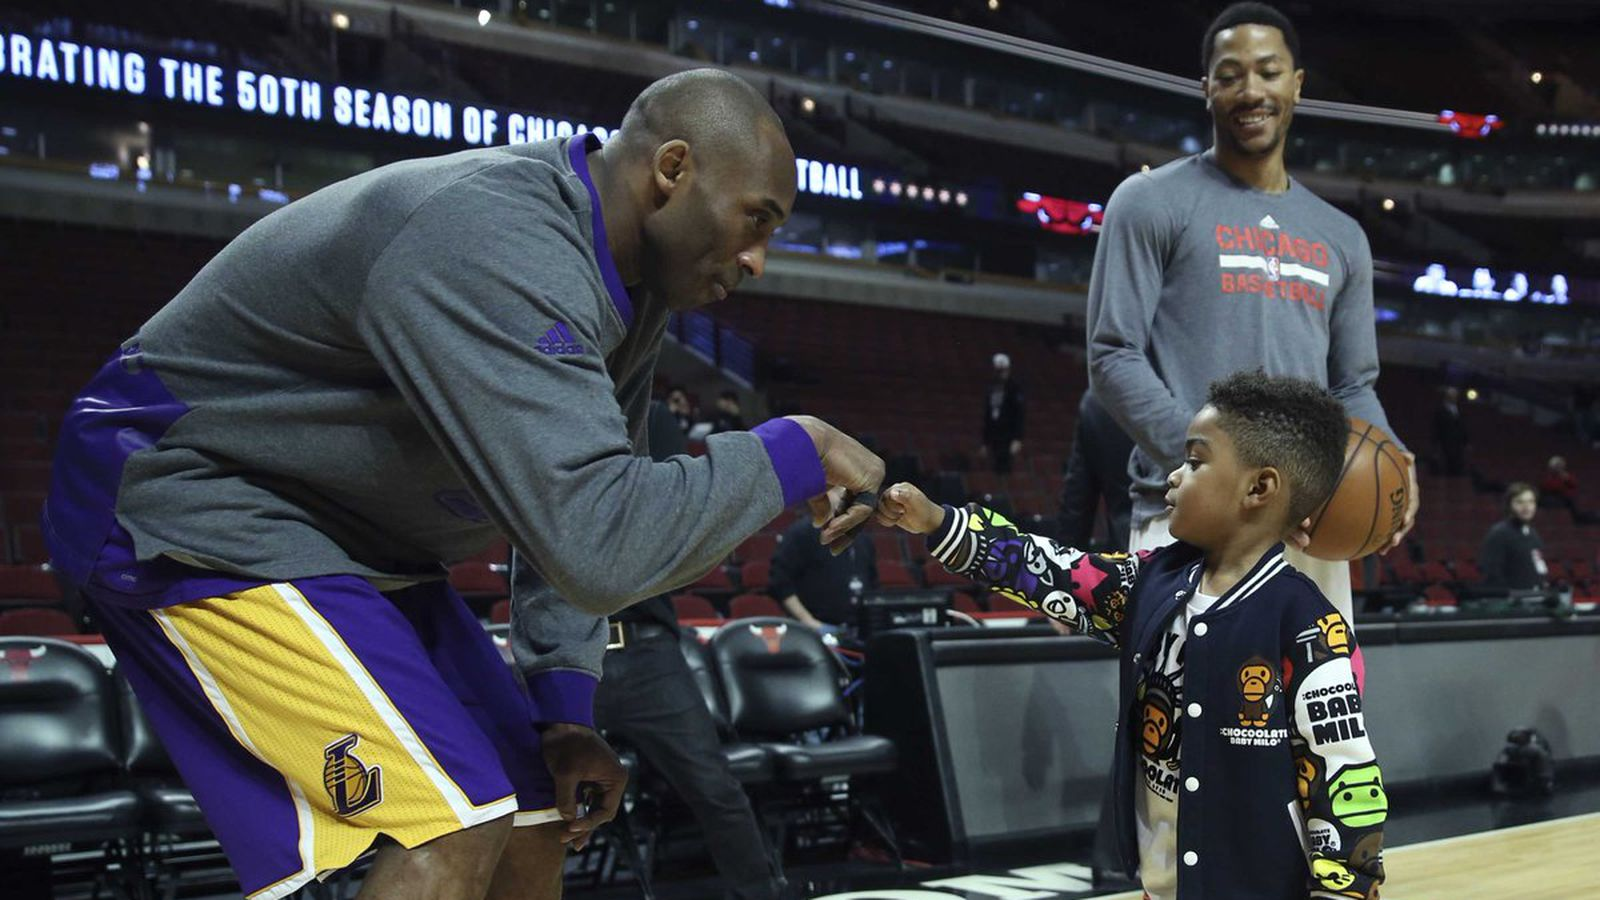 Kobe Bryant fistbumping Derrick Rose's son might be the